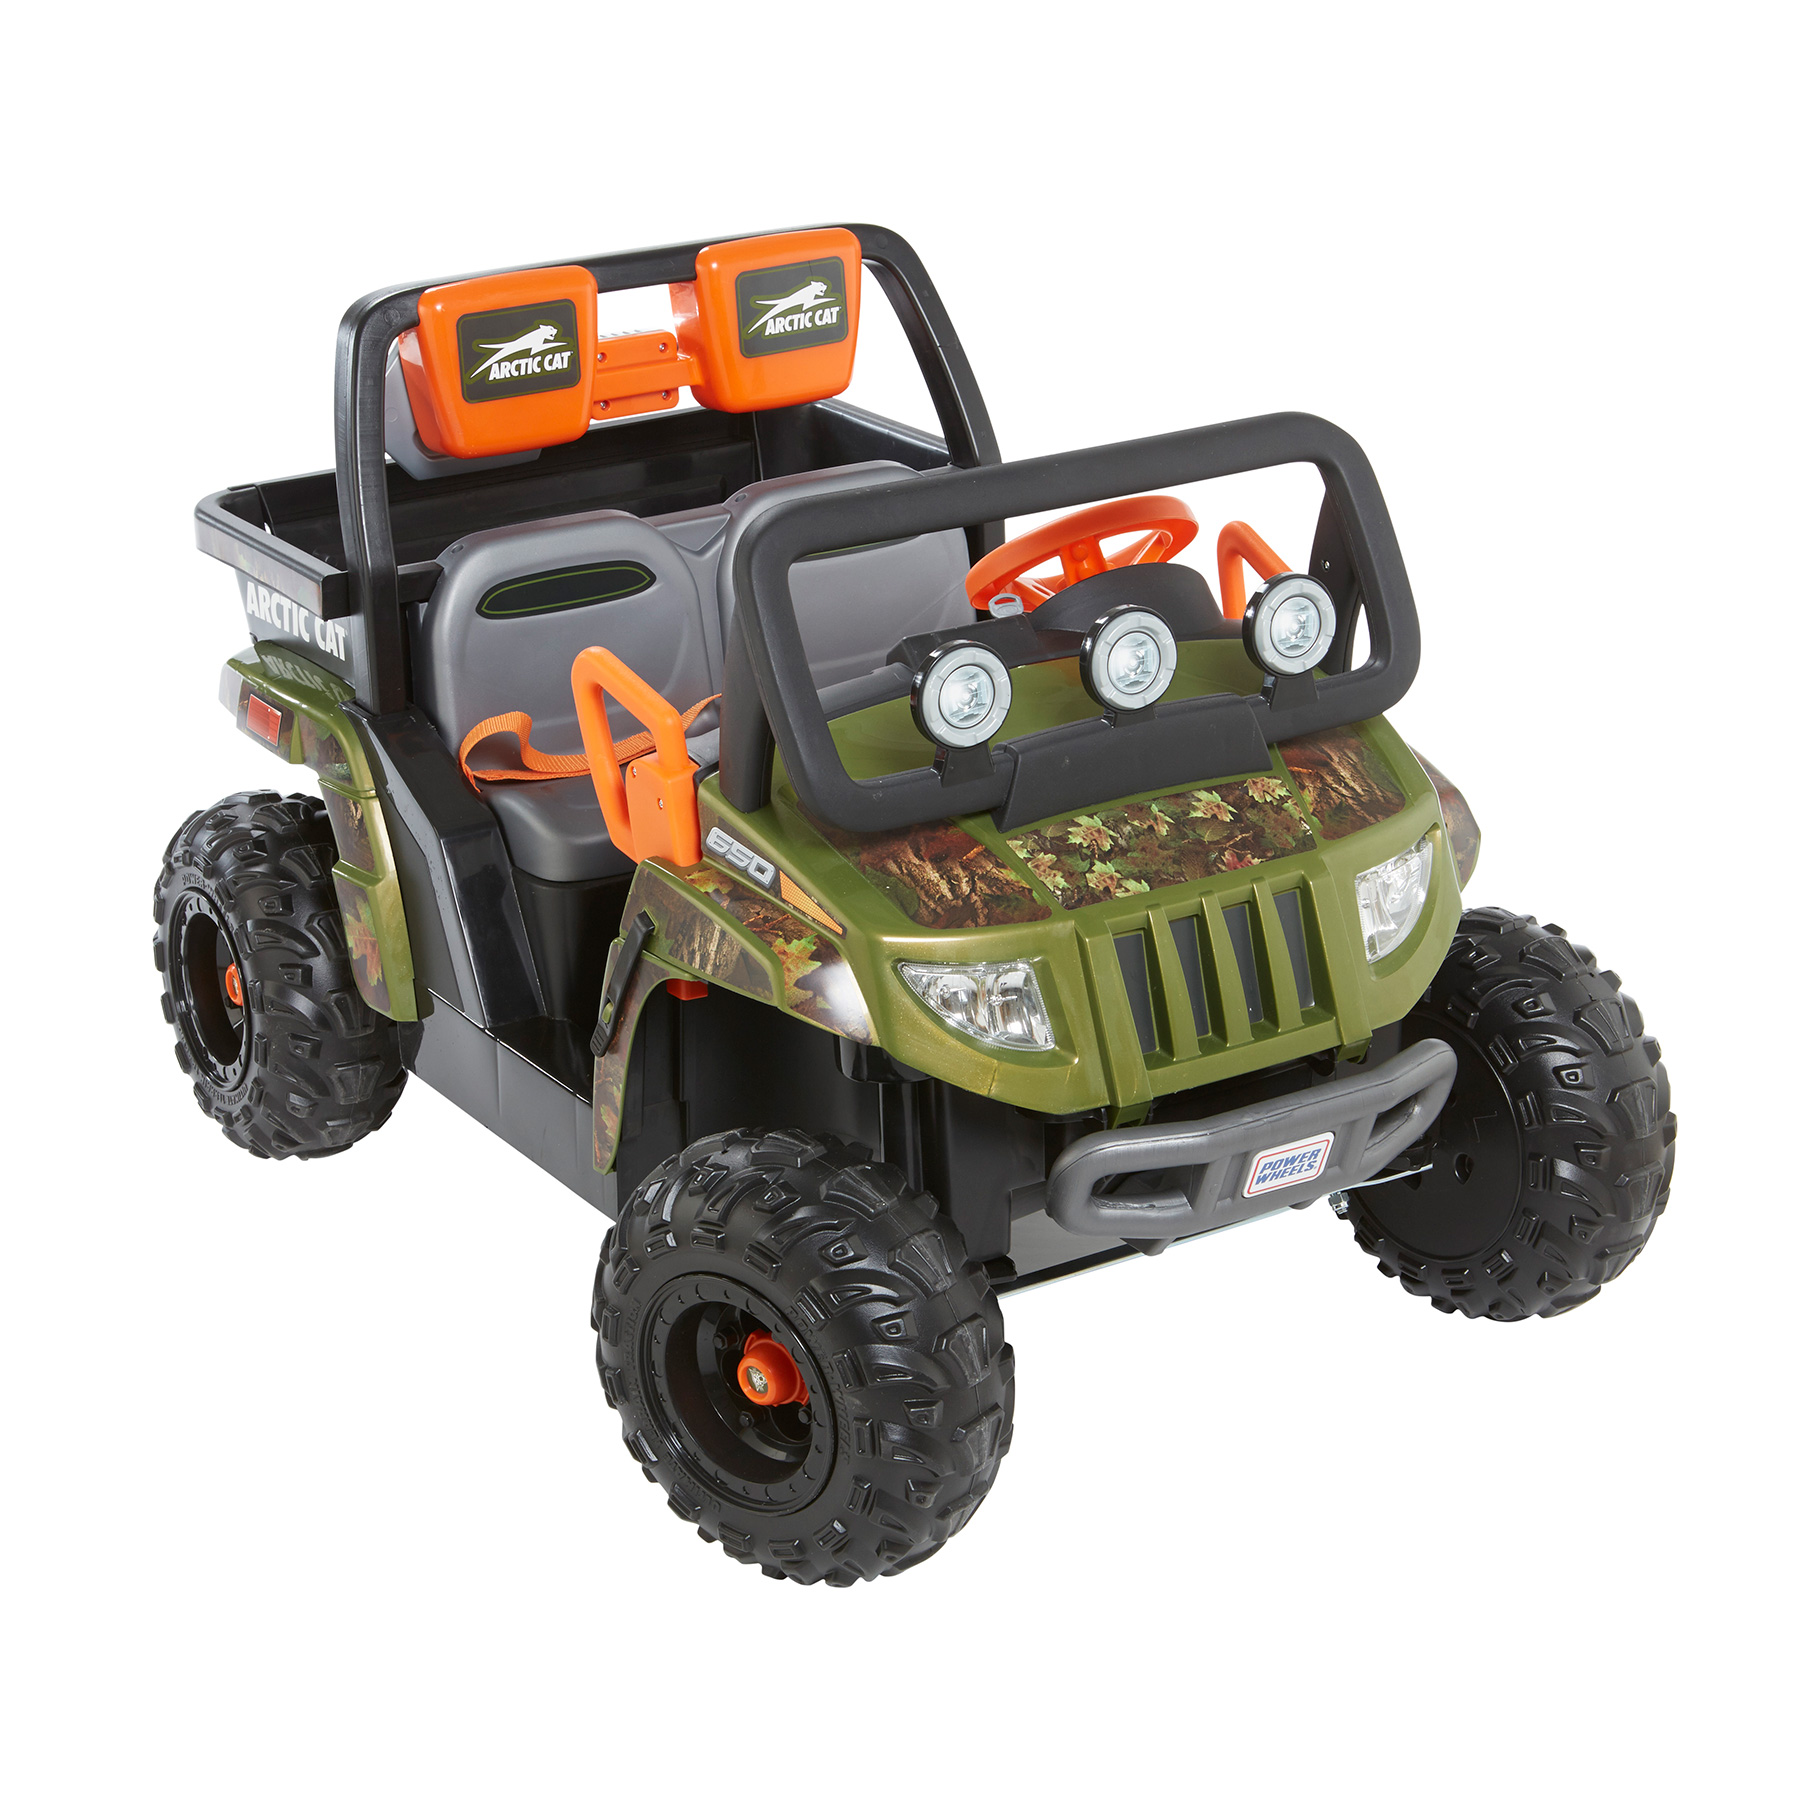 Power Wheels 12v Battery Toy Ride- - Arctic Cat Kmart Exclusive